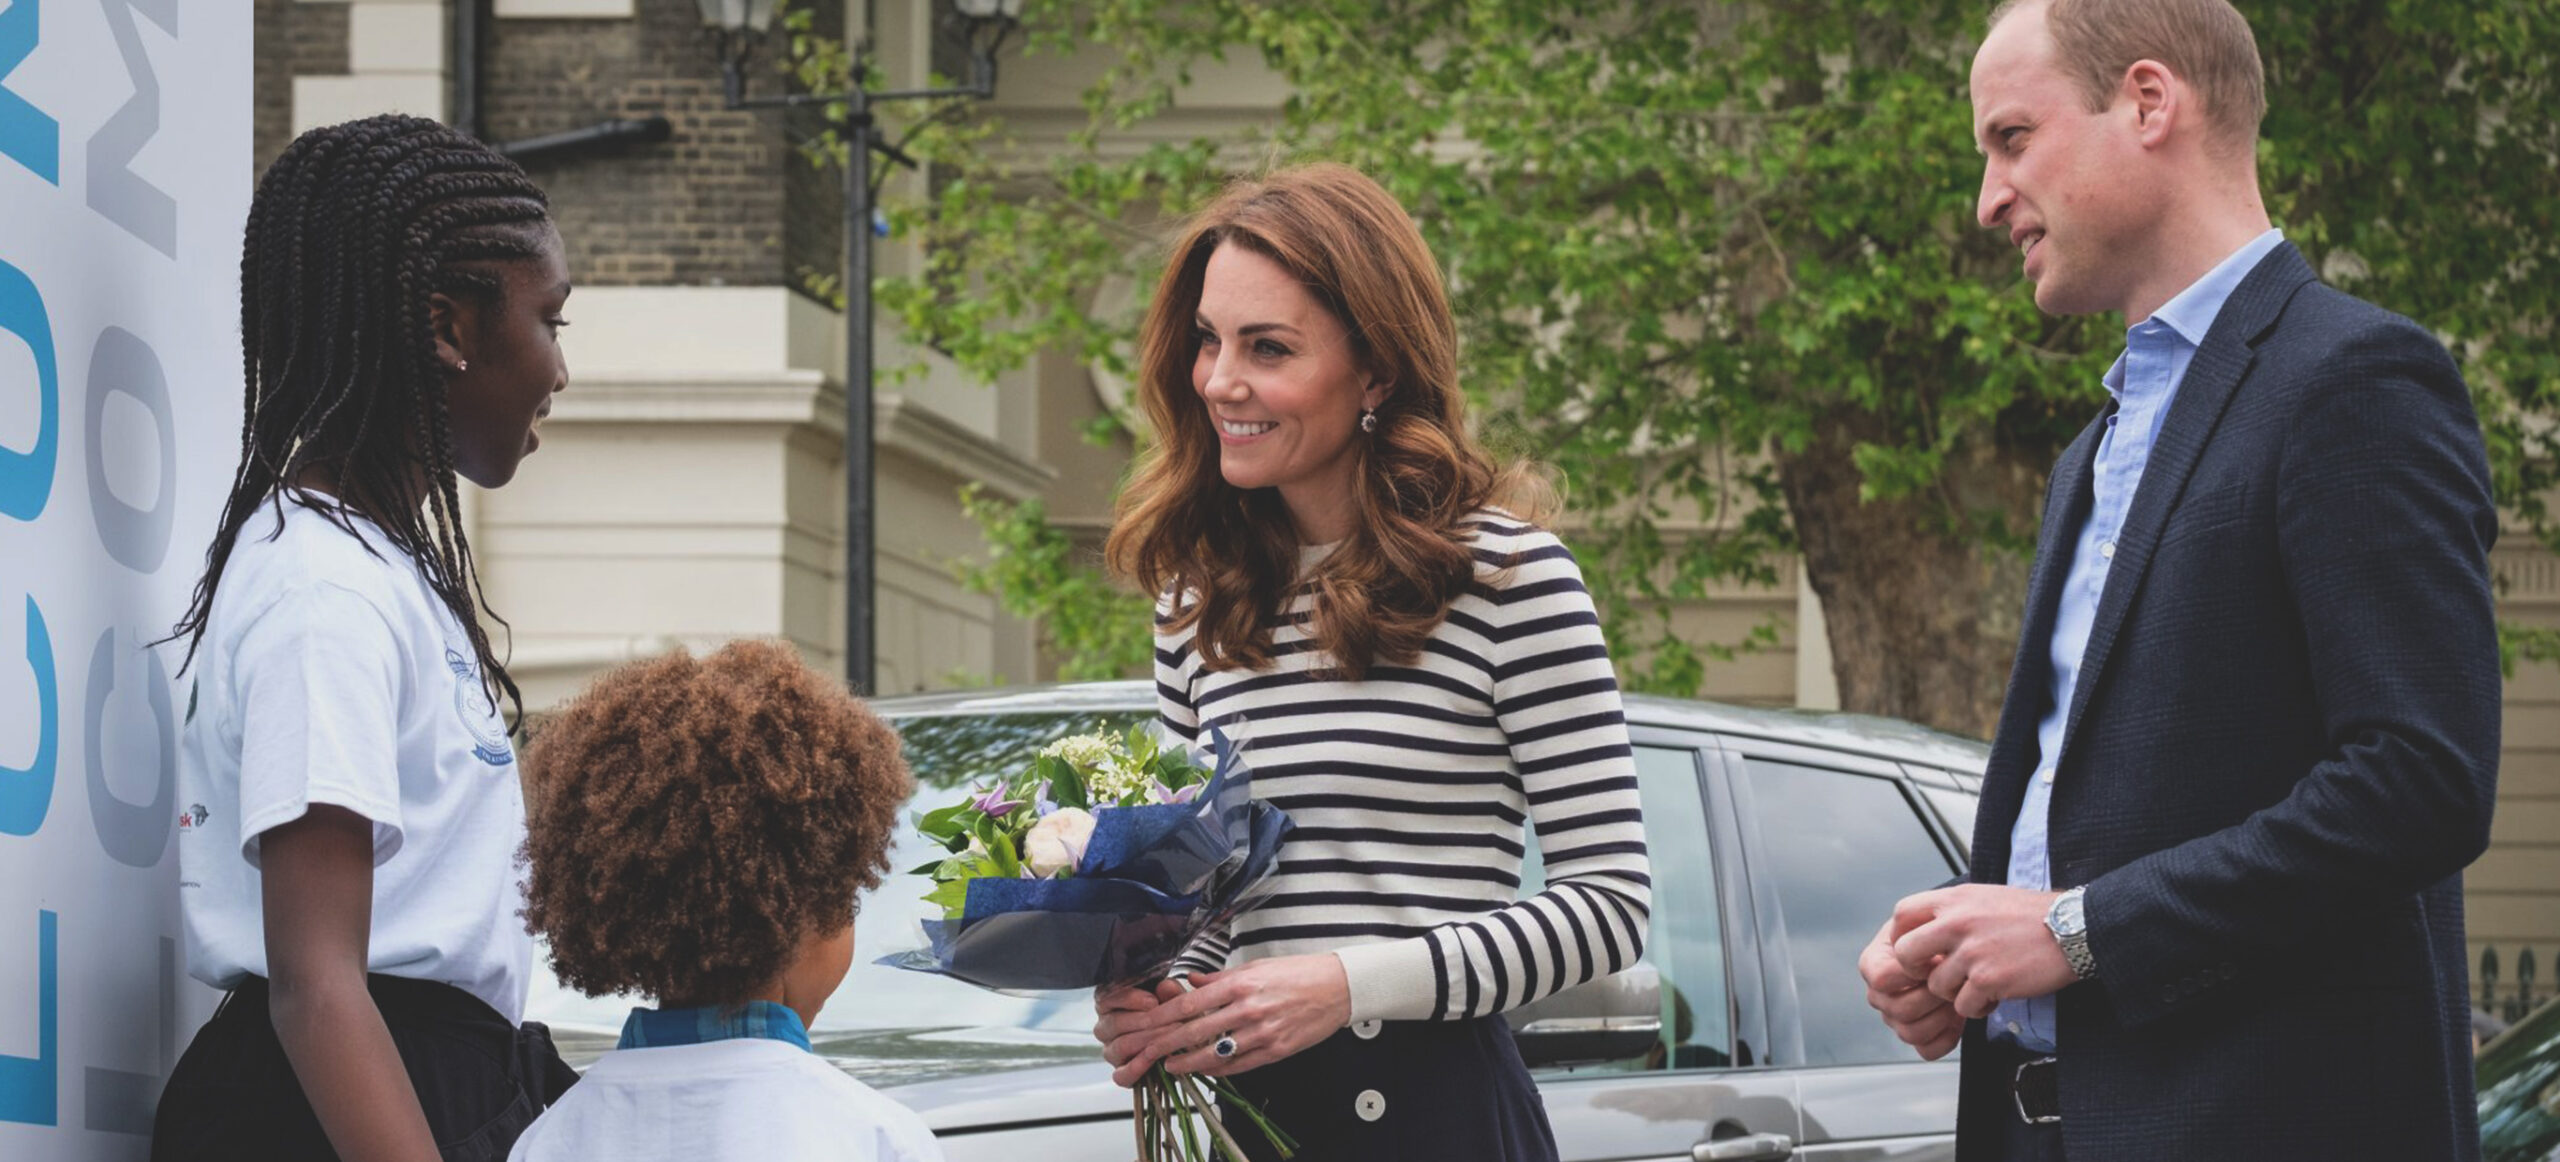 The Royal Foundation - Dramatising the impact of The Royal Foundation